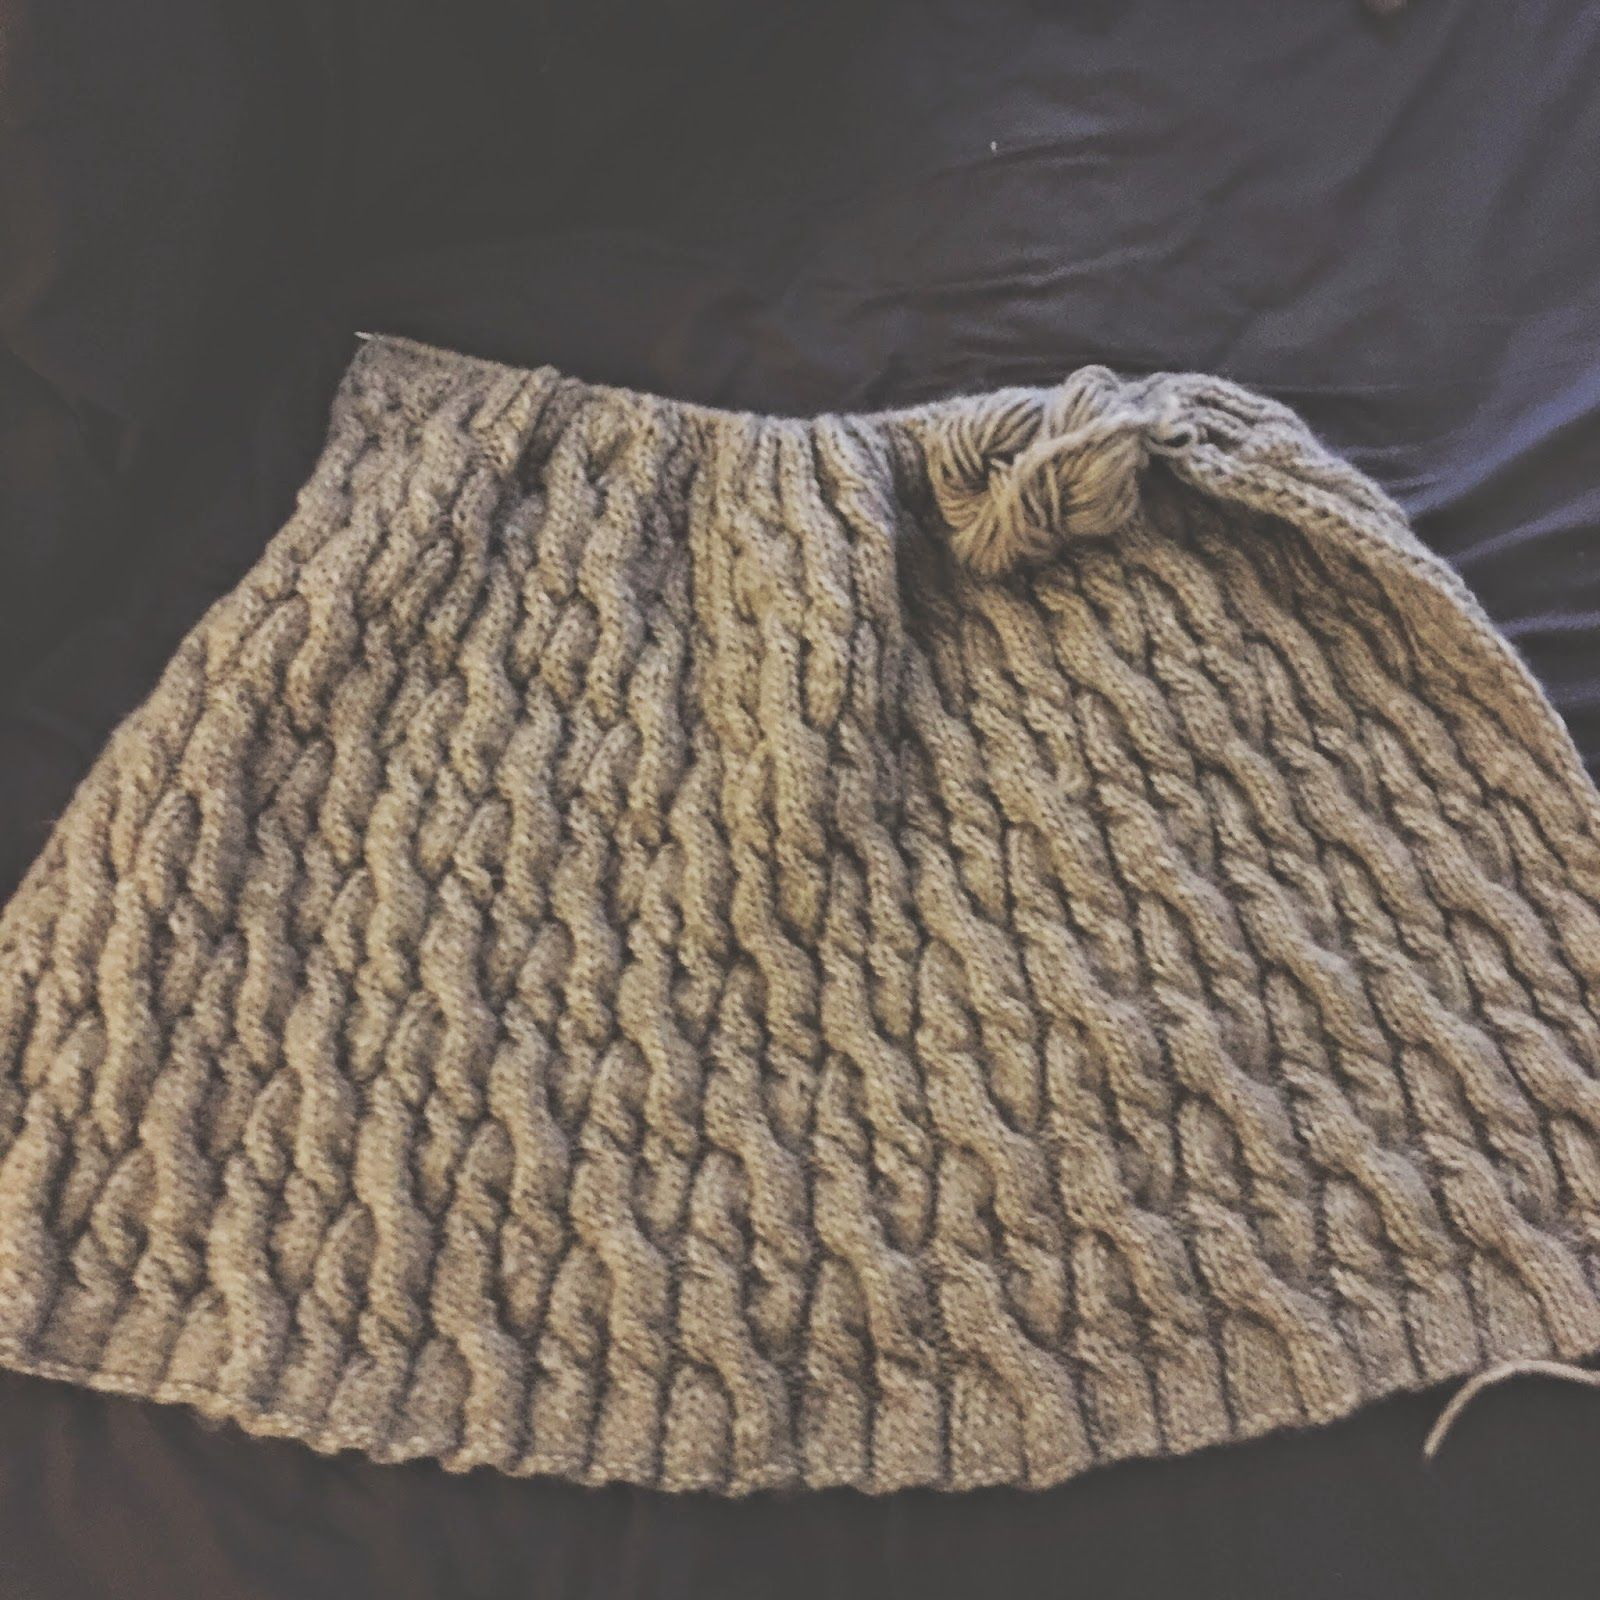 New England Knitting // Blog Post // Cape Ann Blanket // Hand Knit